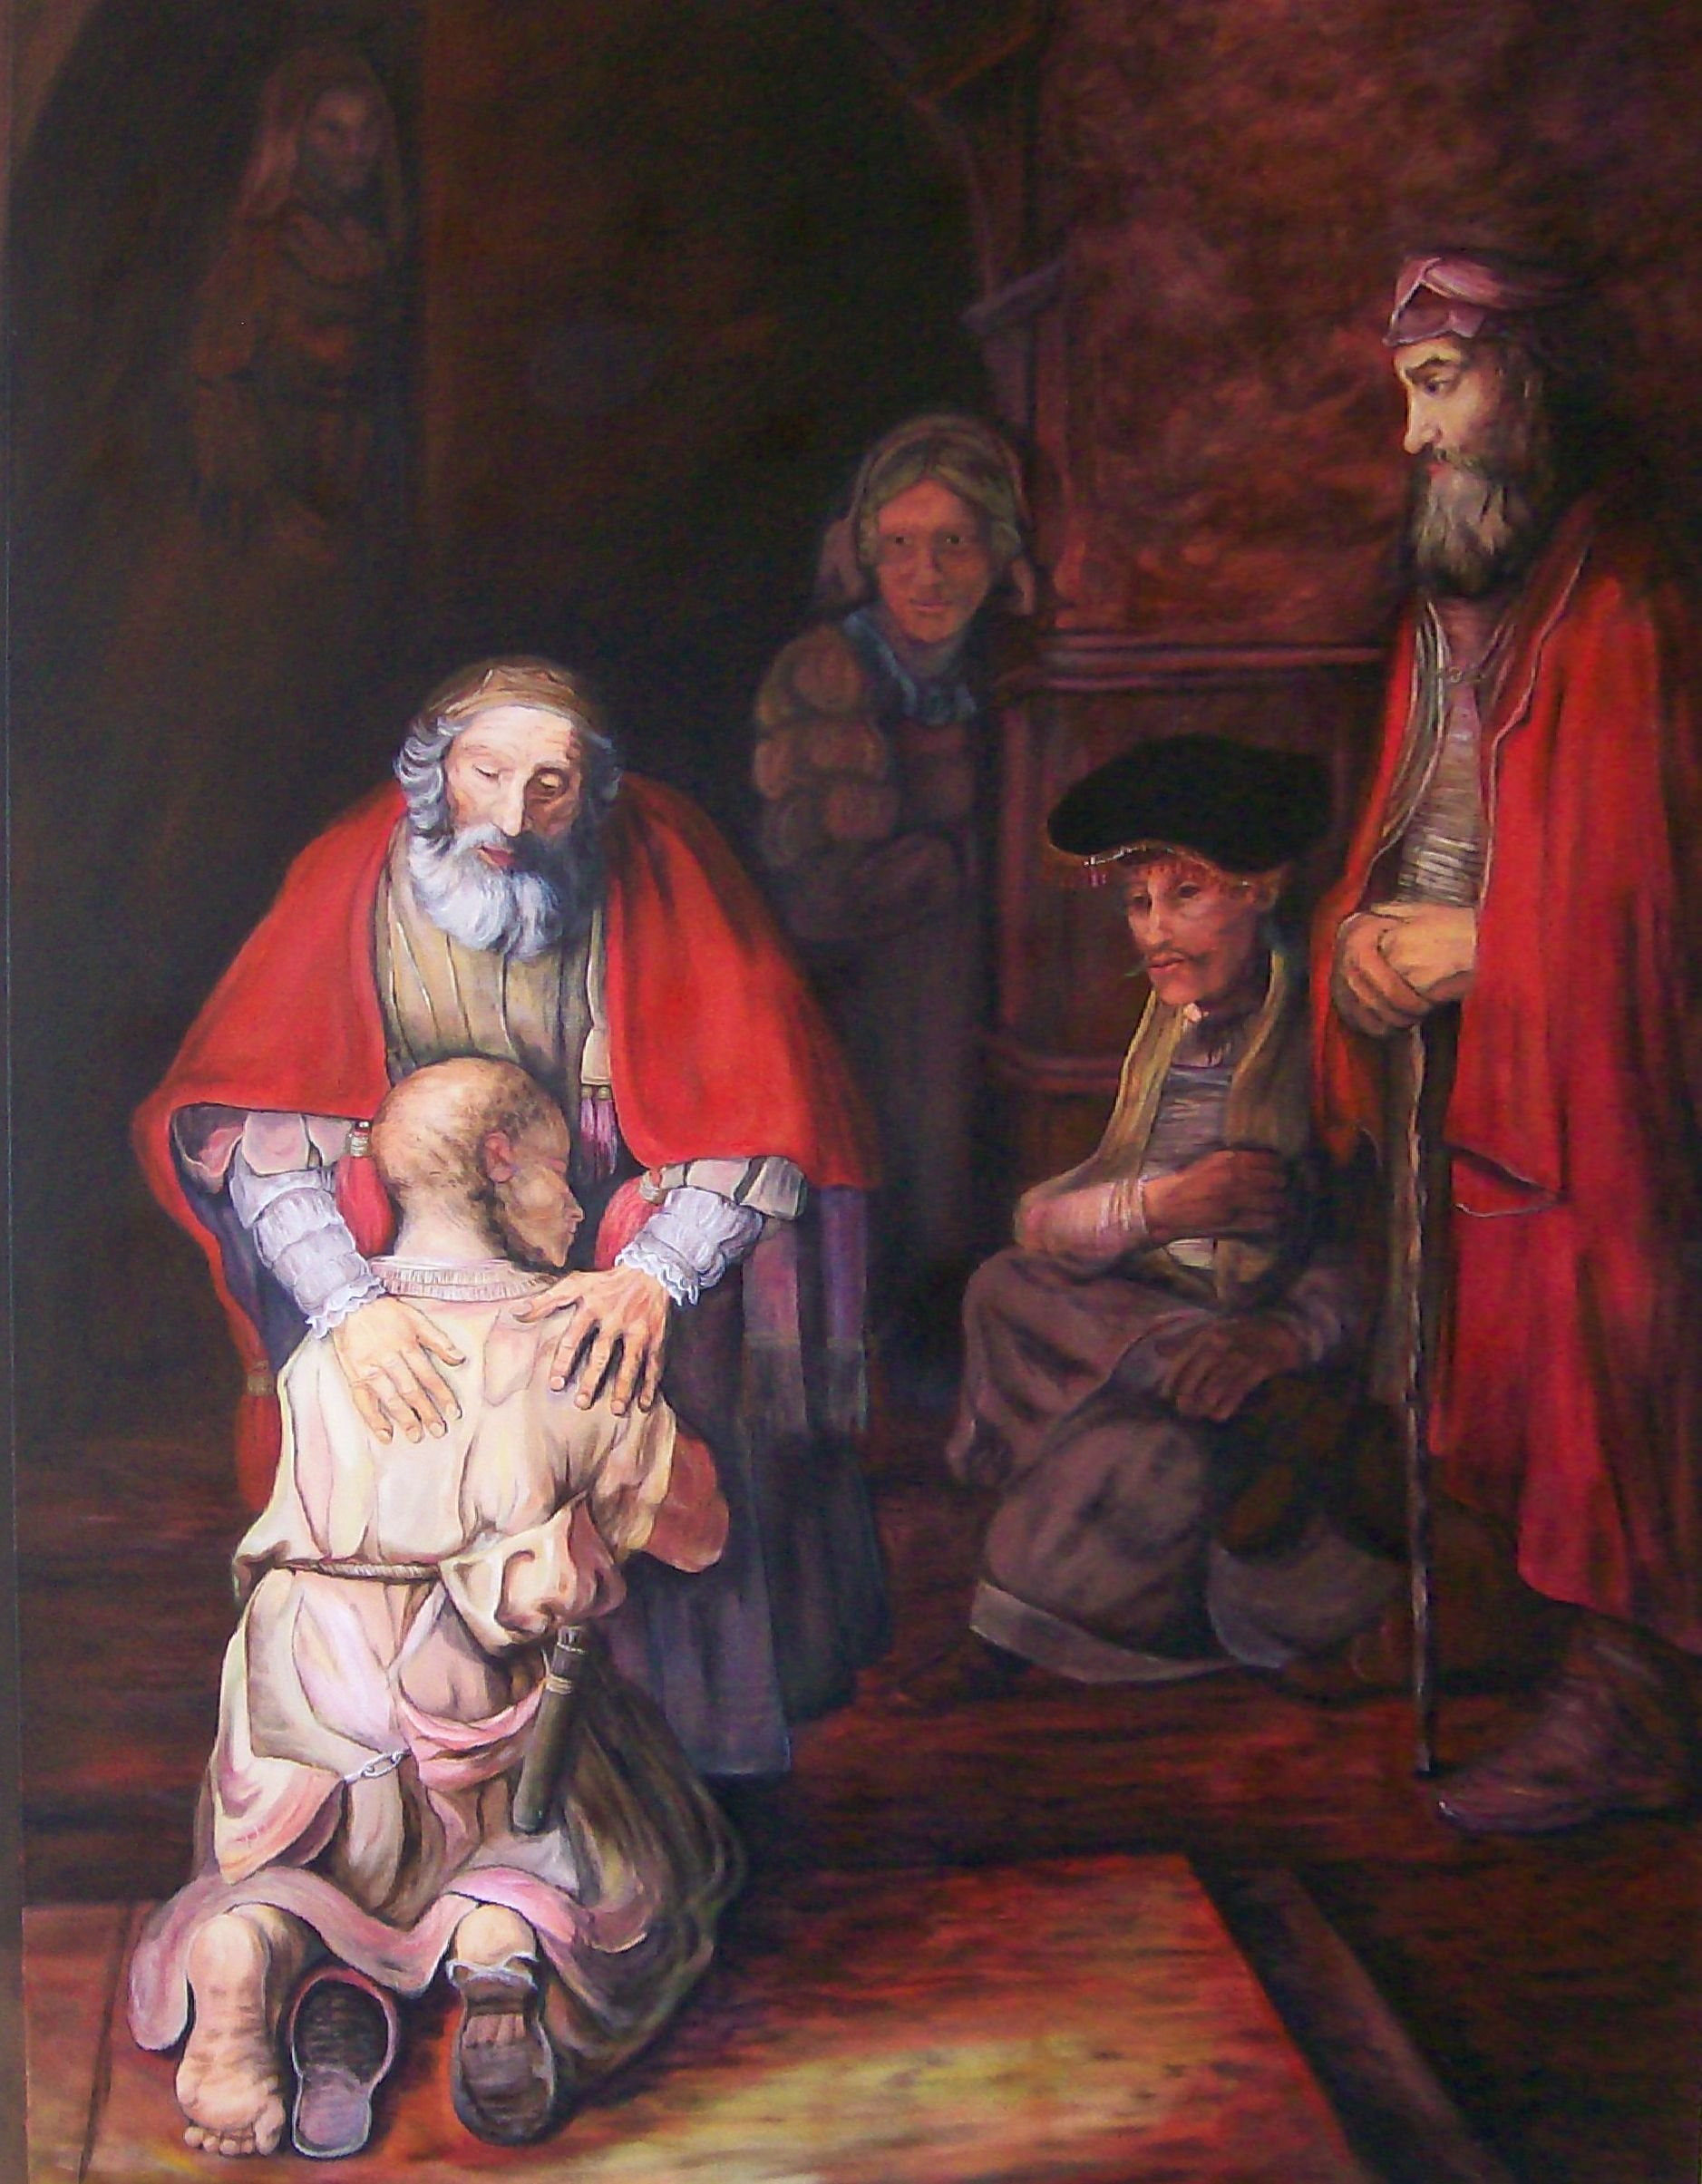 Rembrandt S Famous 17th Century Painting Of Jesus Parable